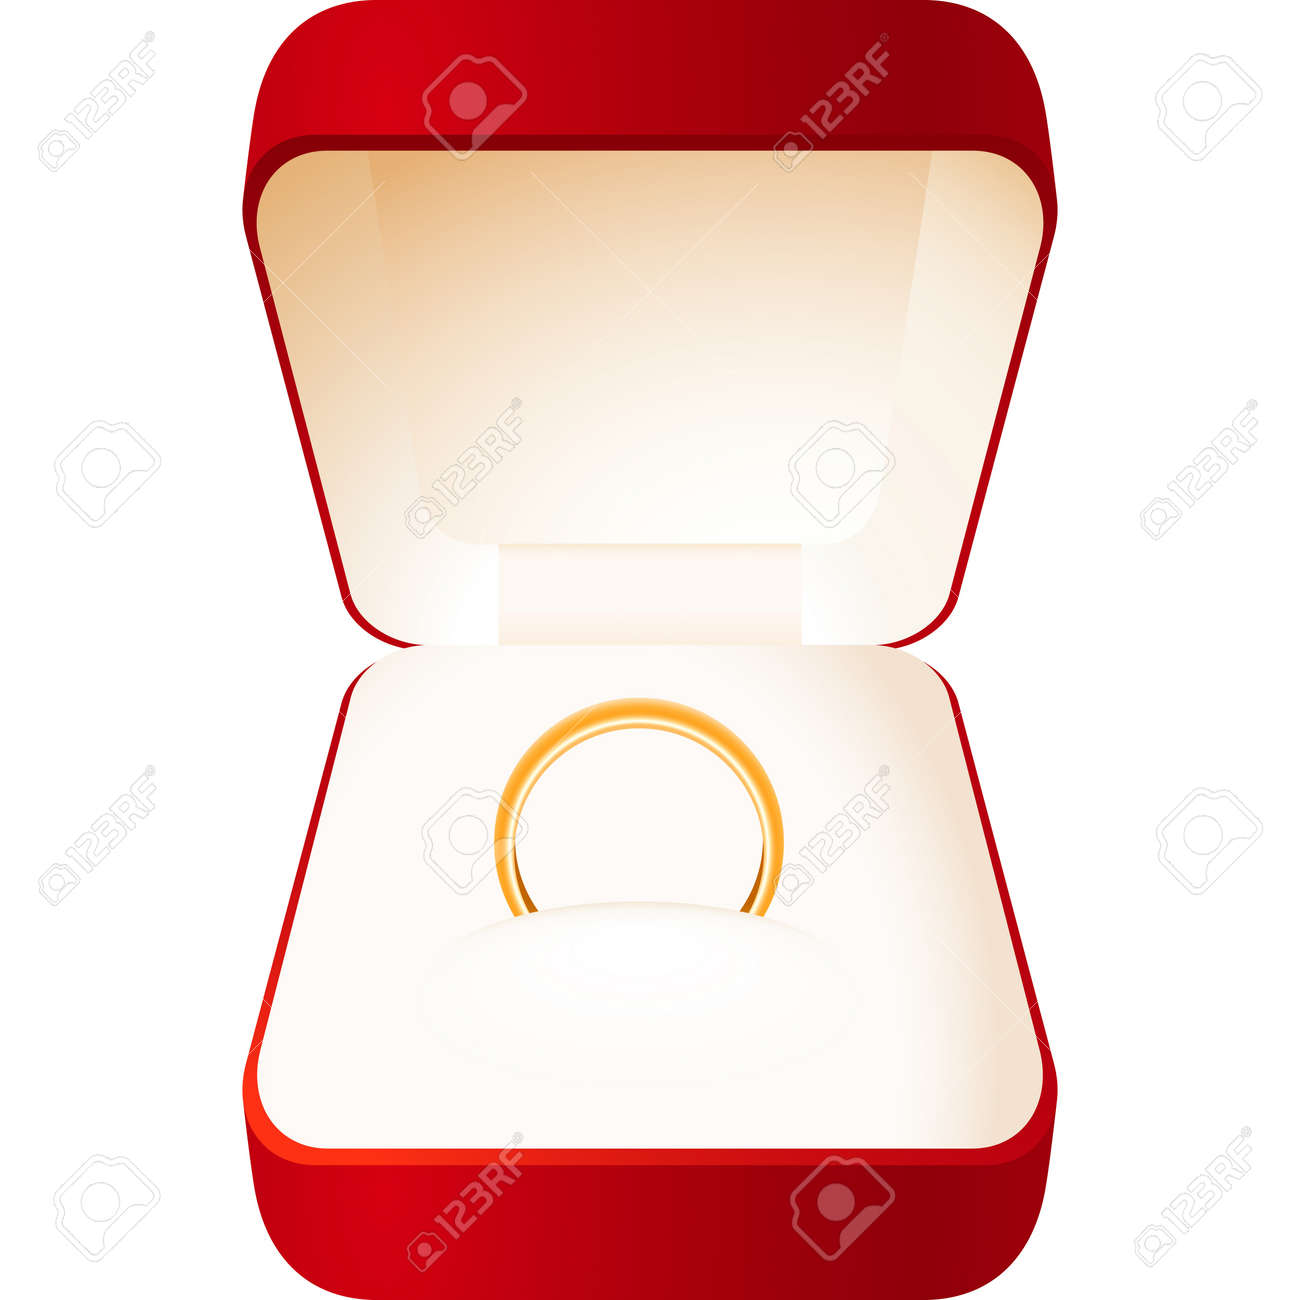 Jewelry Ring Box Clip Art Wiring Diagrams Hydra Under Microscope Labeled See Diagram 9377 Obelia Red With A Gold Wedding Royalty Free Cliparts Rh 123rf Com